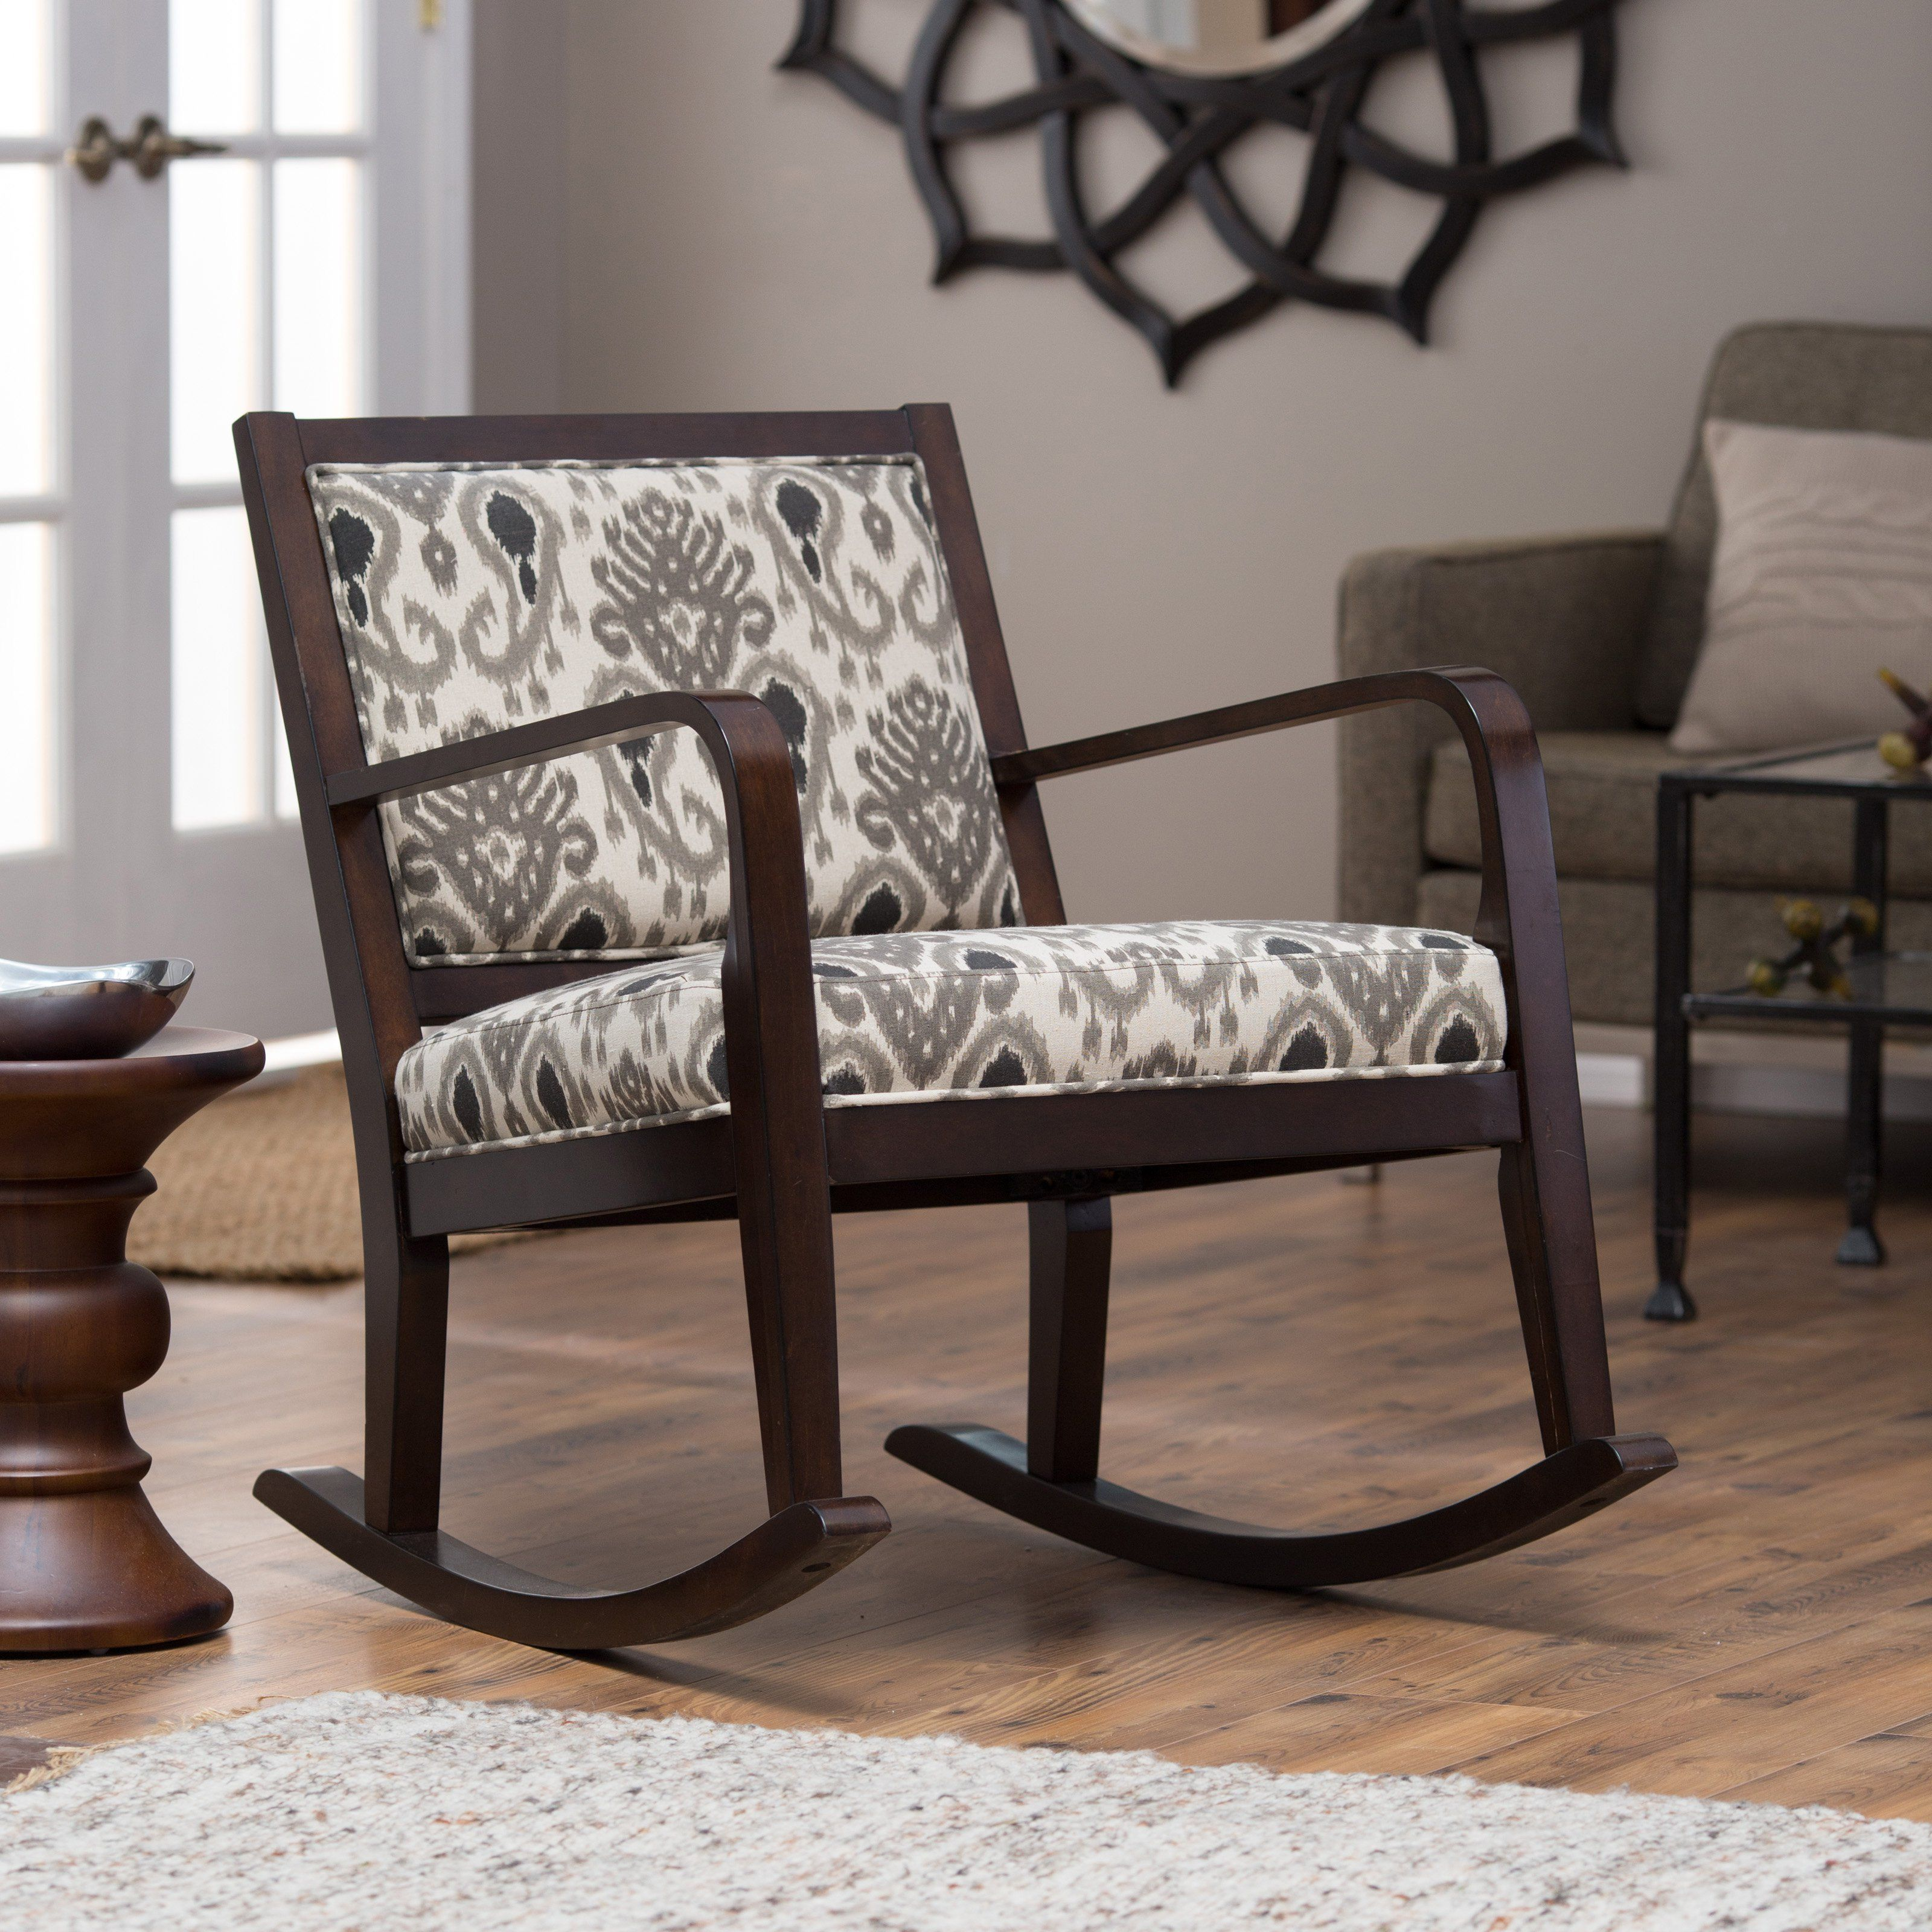 have to have it. belham living ikat rocking chair - $199